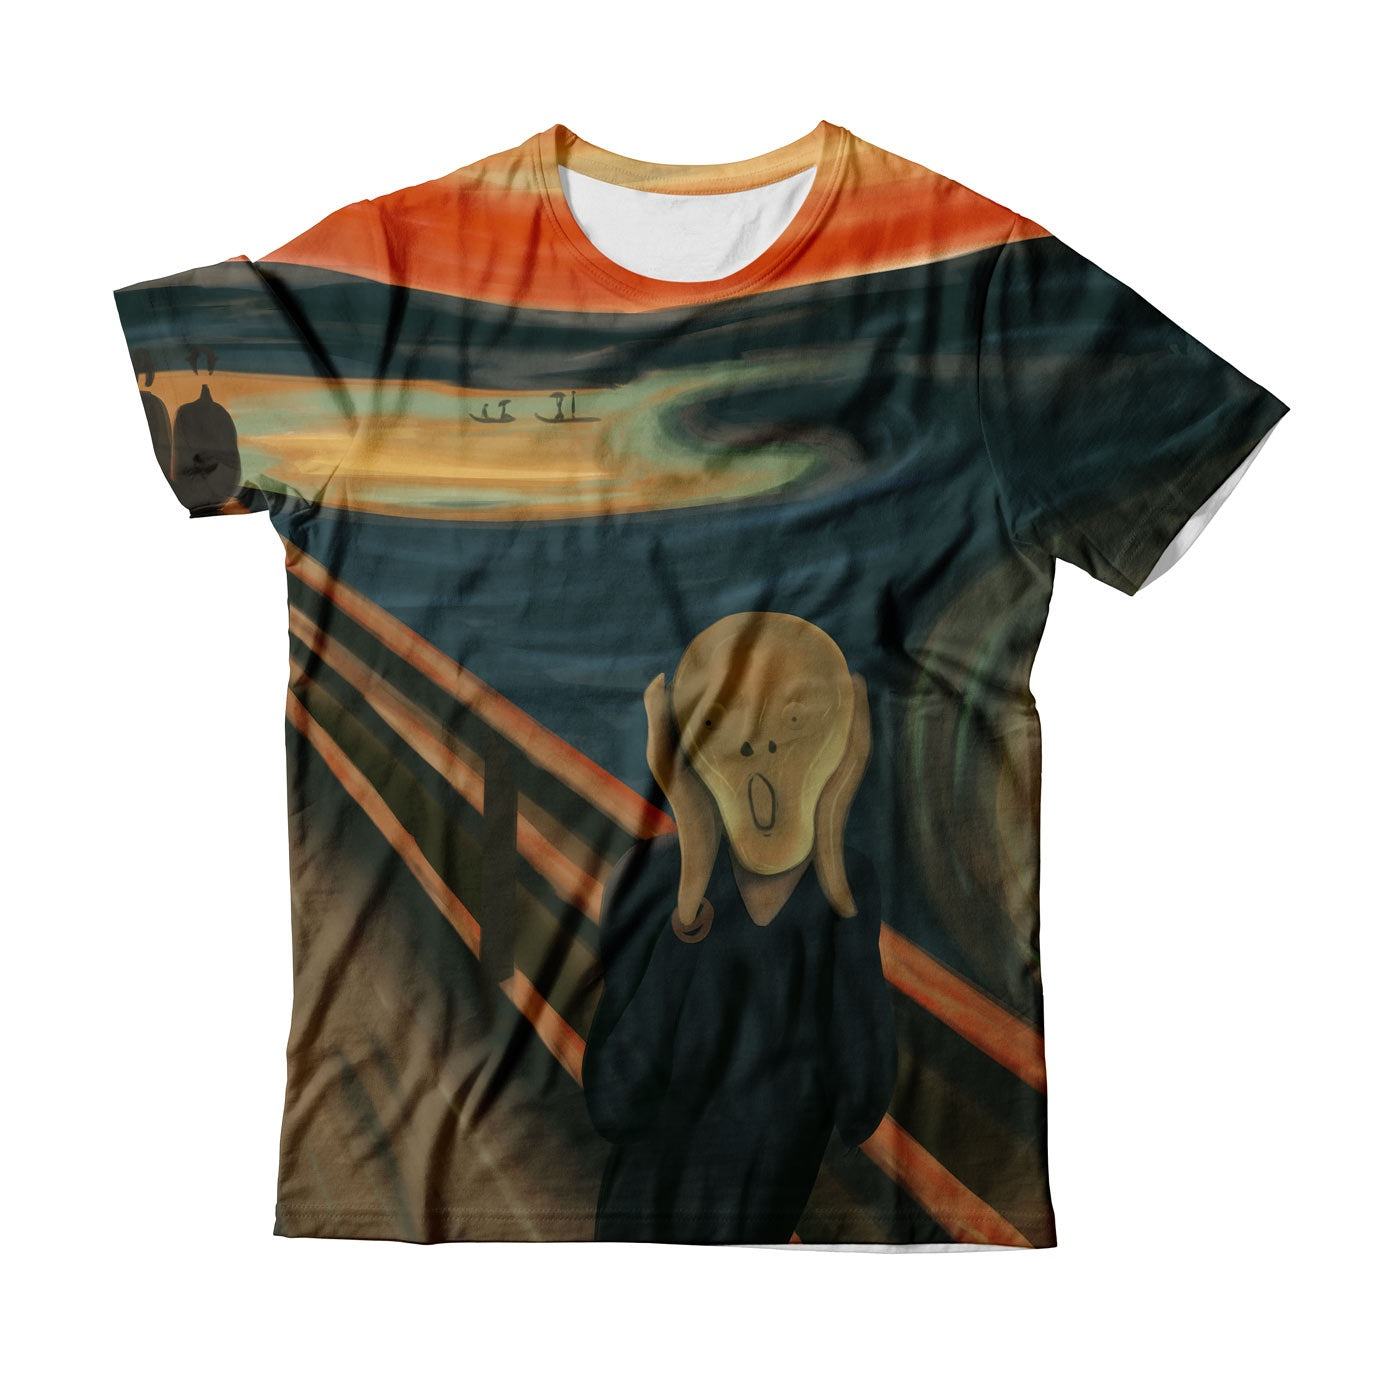 A Scream T-Shirt